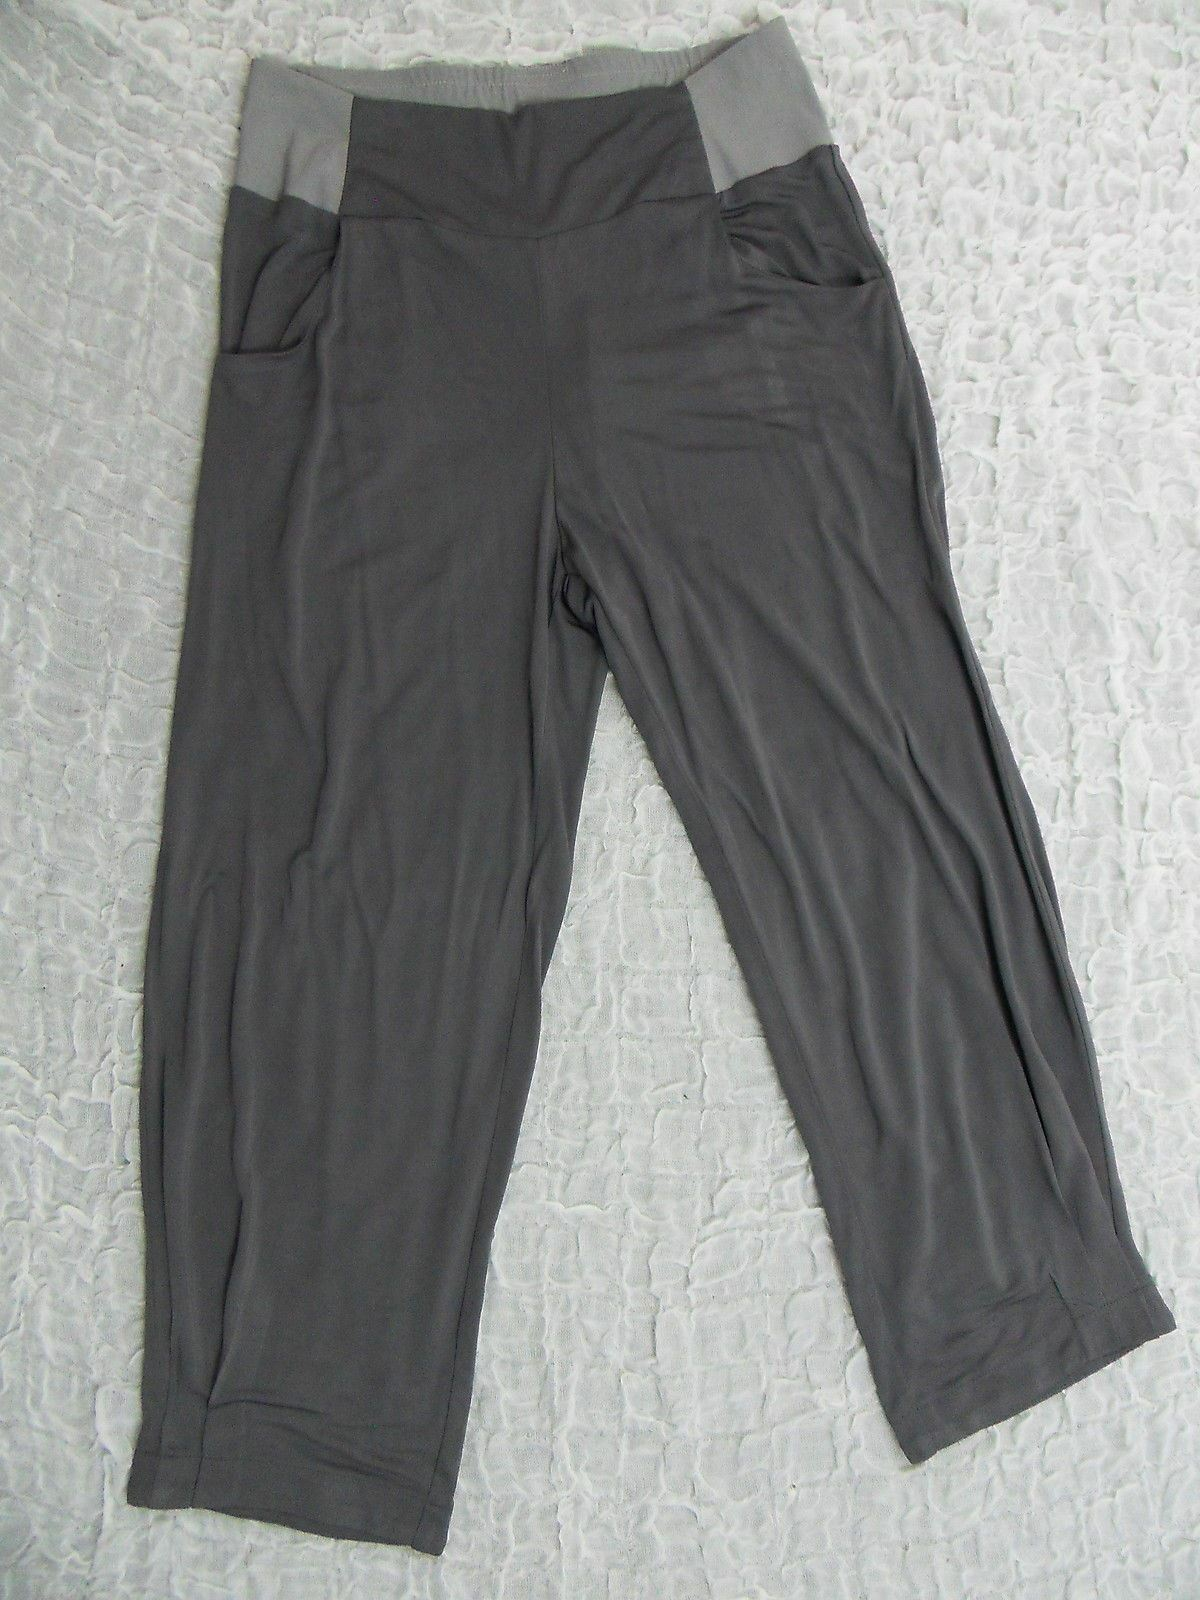 THE ARK charcoal grey cropped harem designer pants size S MADE IN AUSTRALIA BNWT